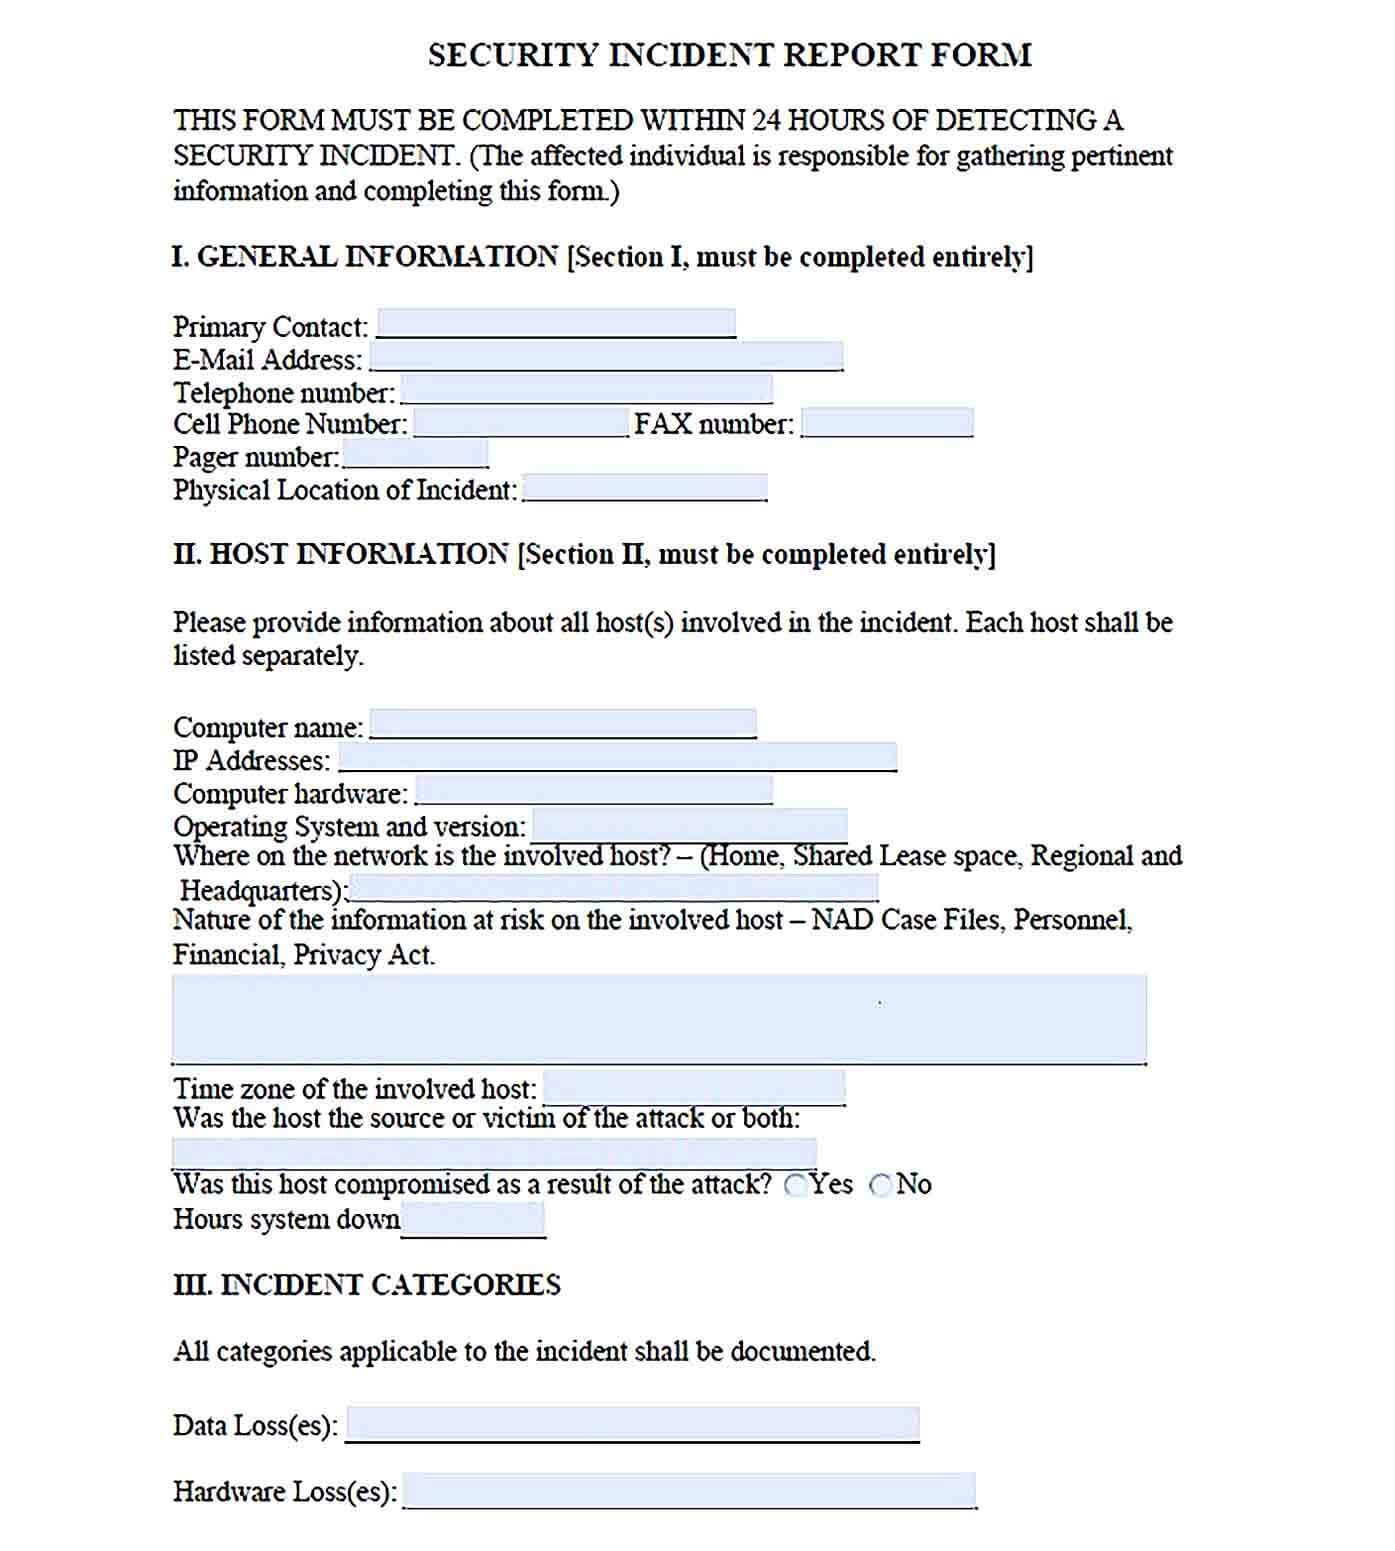 Sample Blank Security Incident Report Form